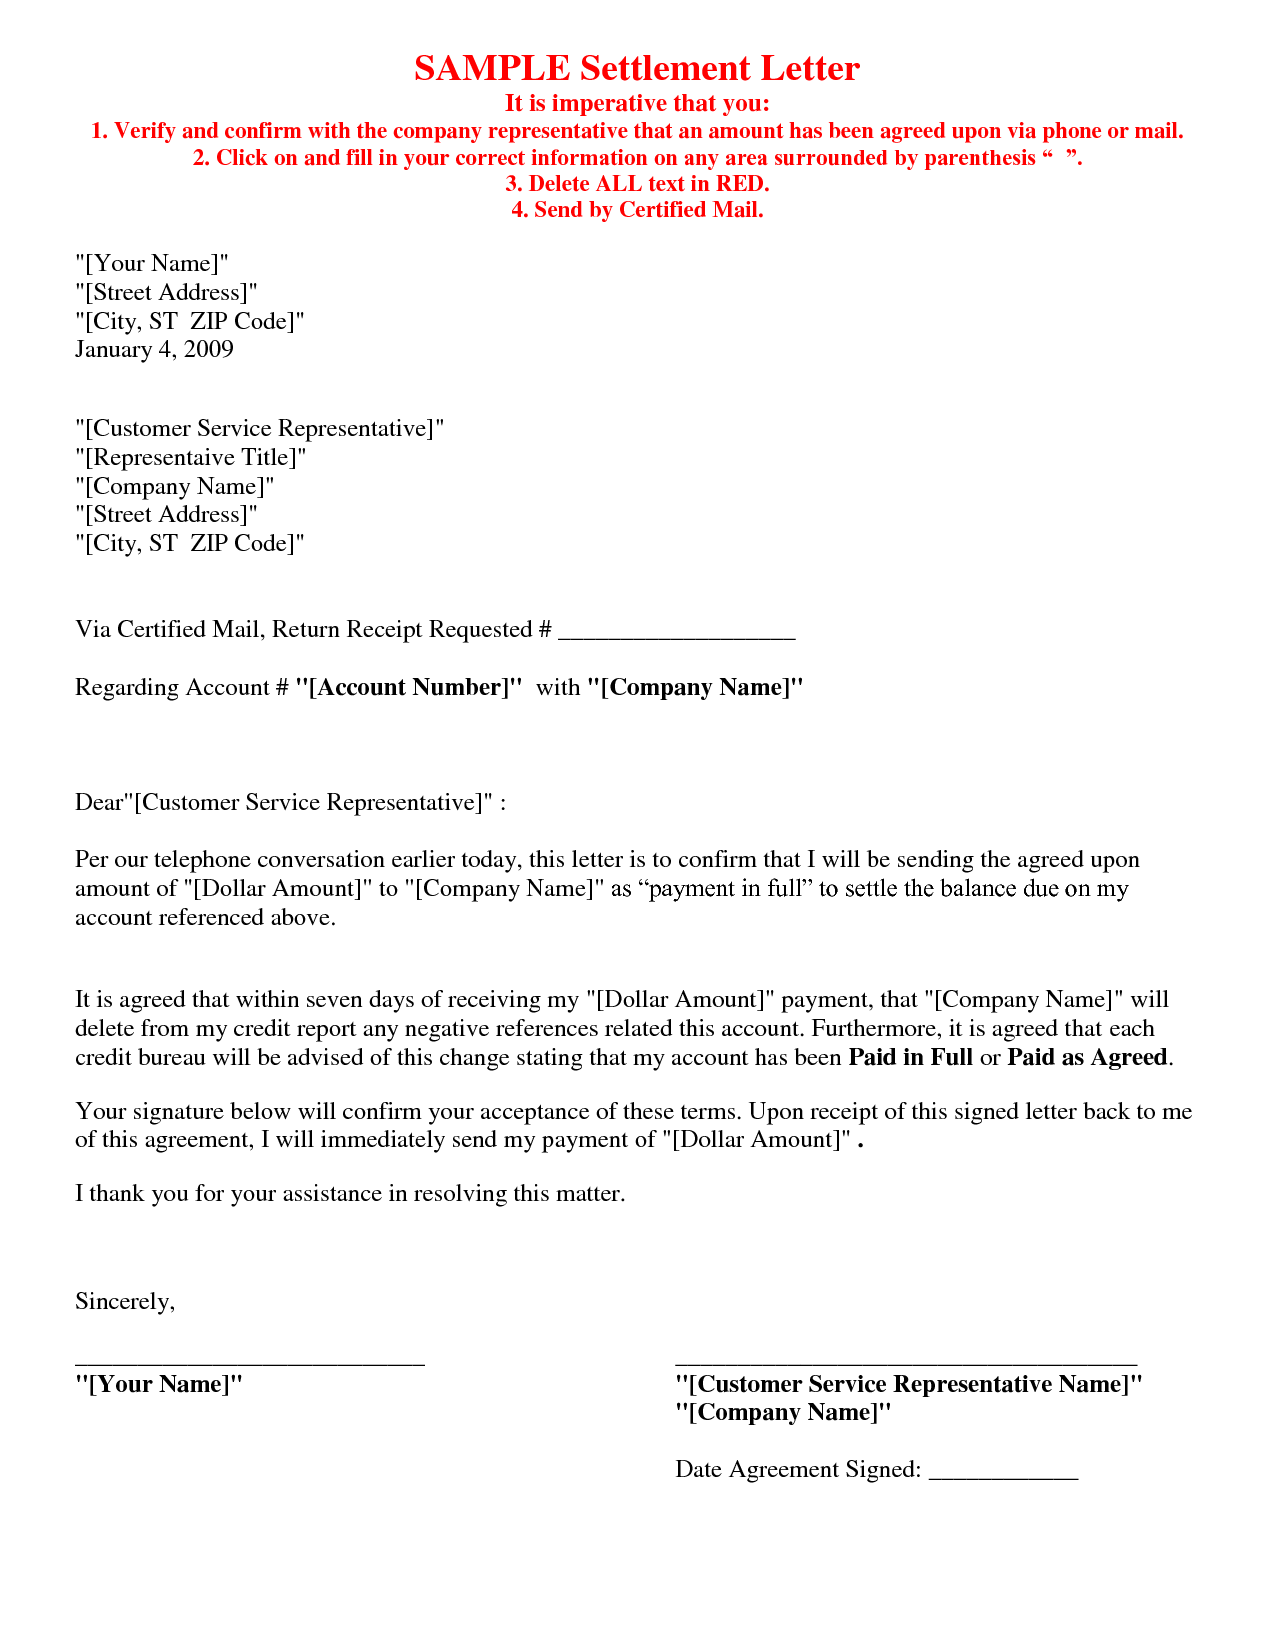 Picture 5 of 17 debt settlement agreement letter sample picture 5 of 17 debt settlement agreement letter sample agreement letter template spiritdancerdesigns Images